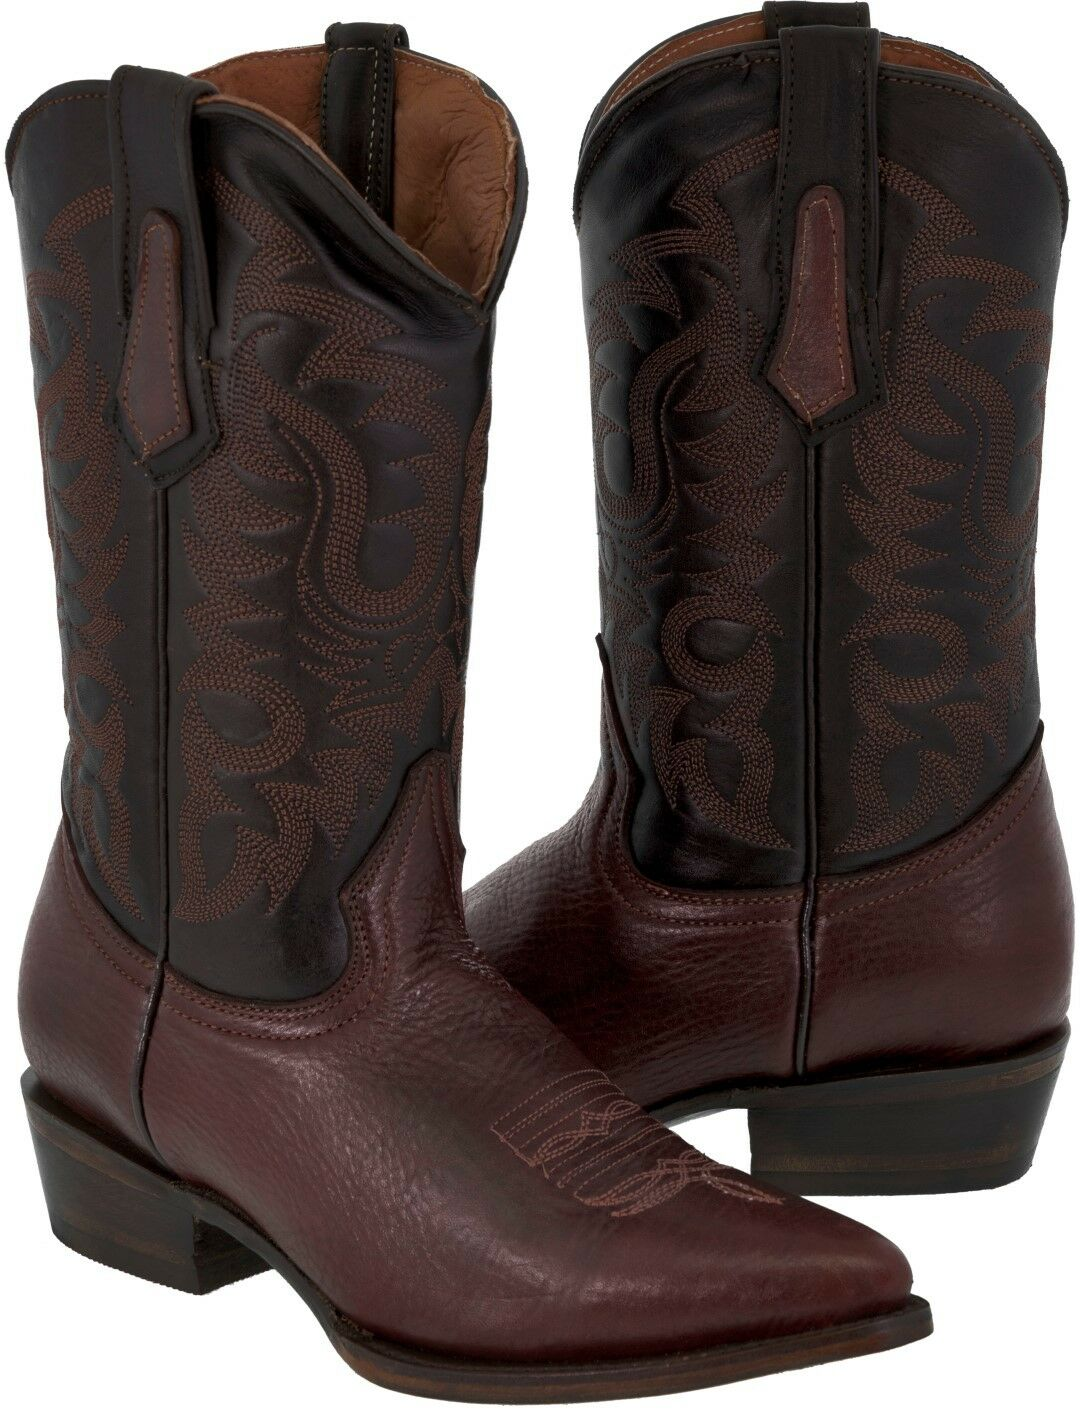 Men's Burgundy Bison Shoulder Cowboy Boots Buffalo Leather Cowboy Boots J Toe